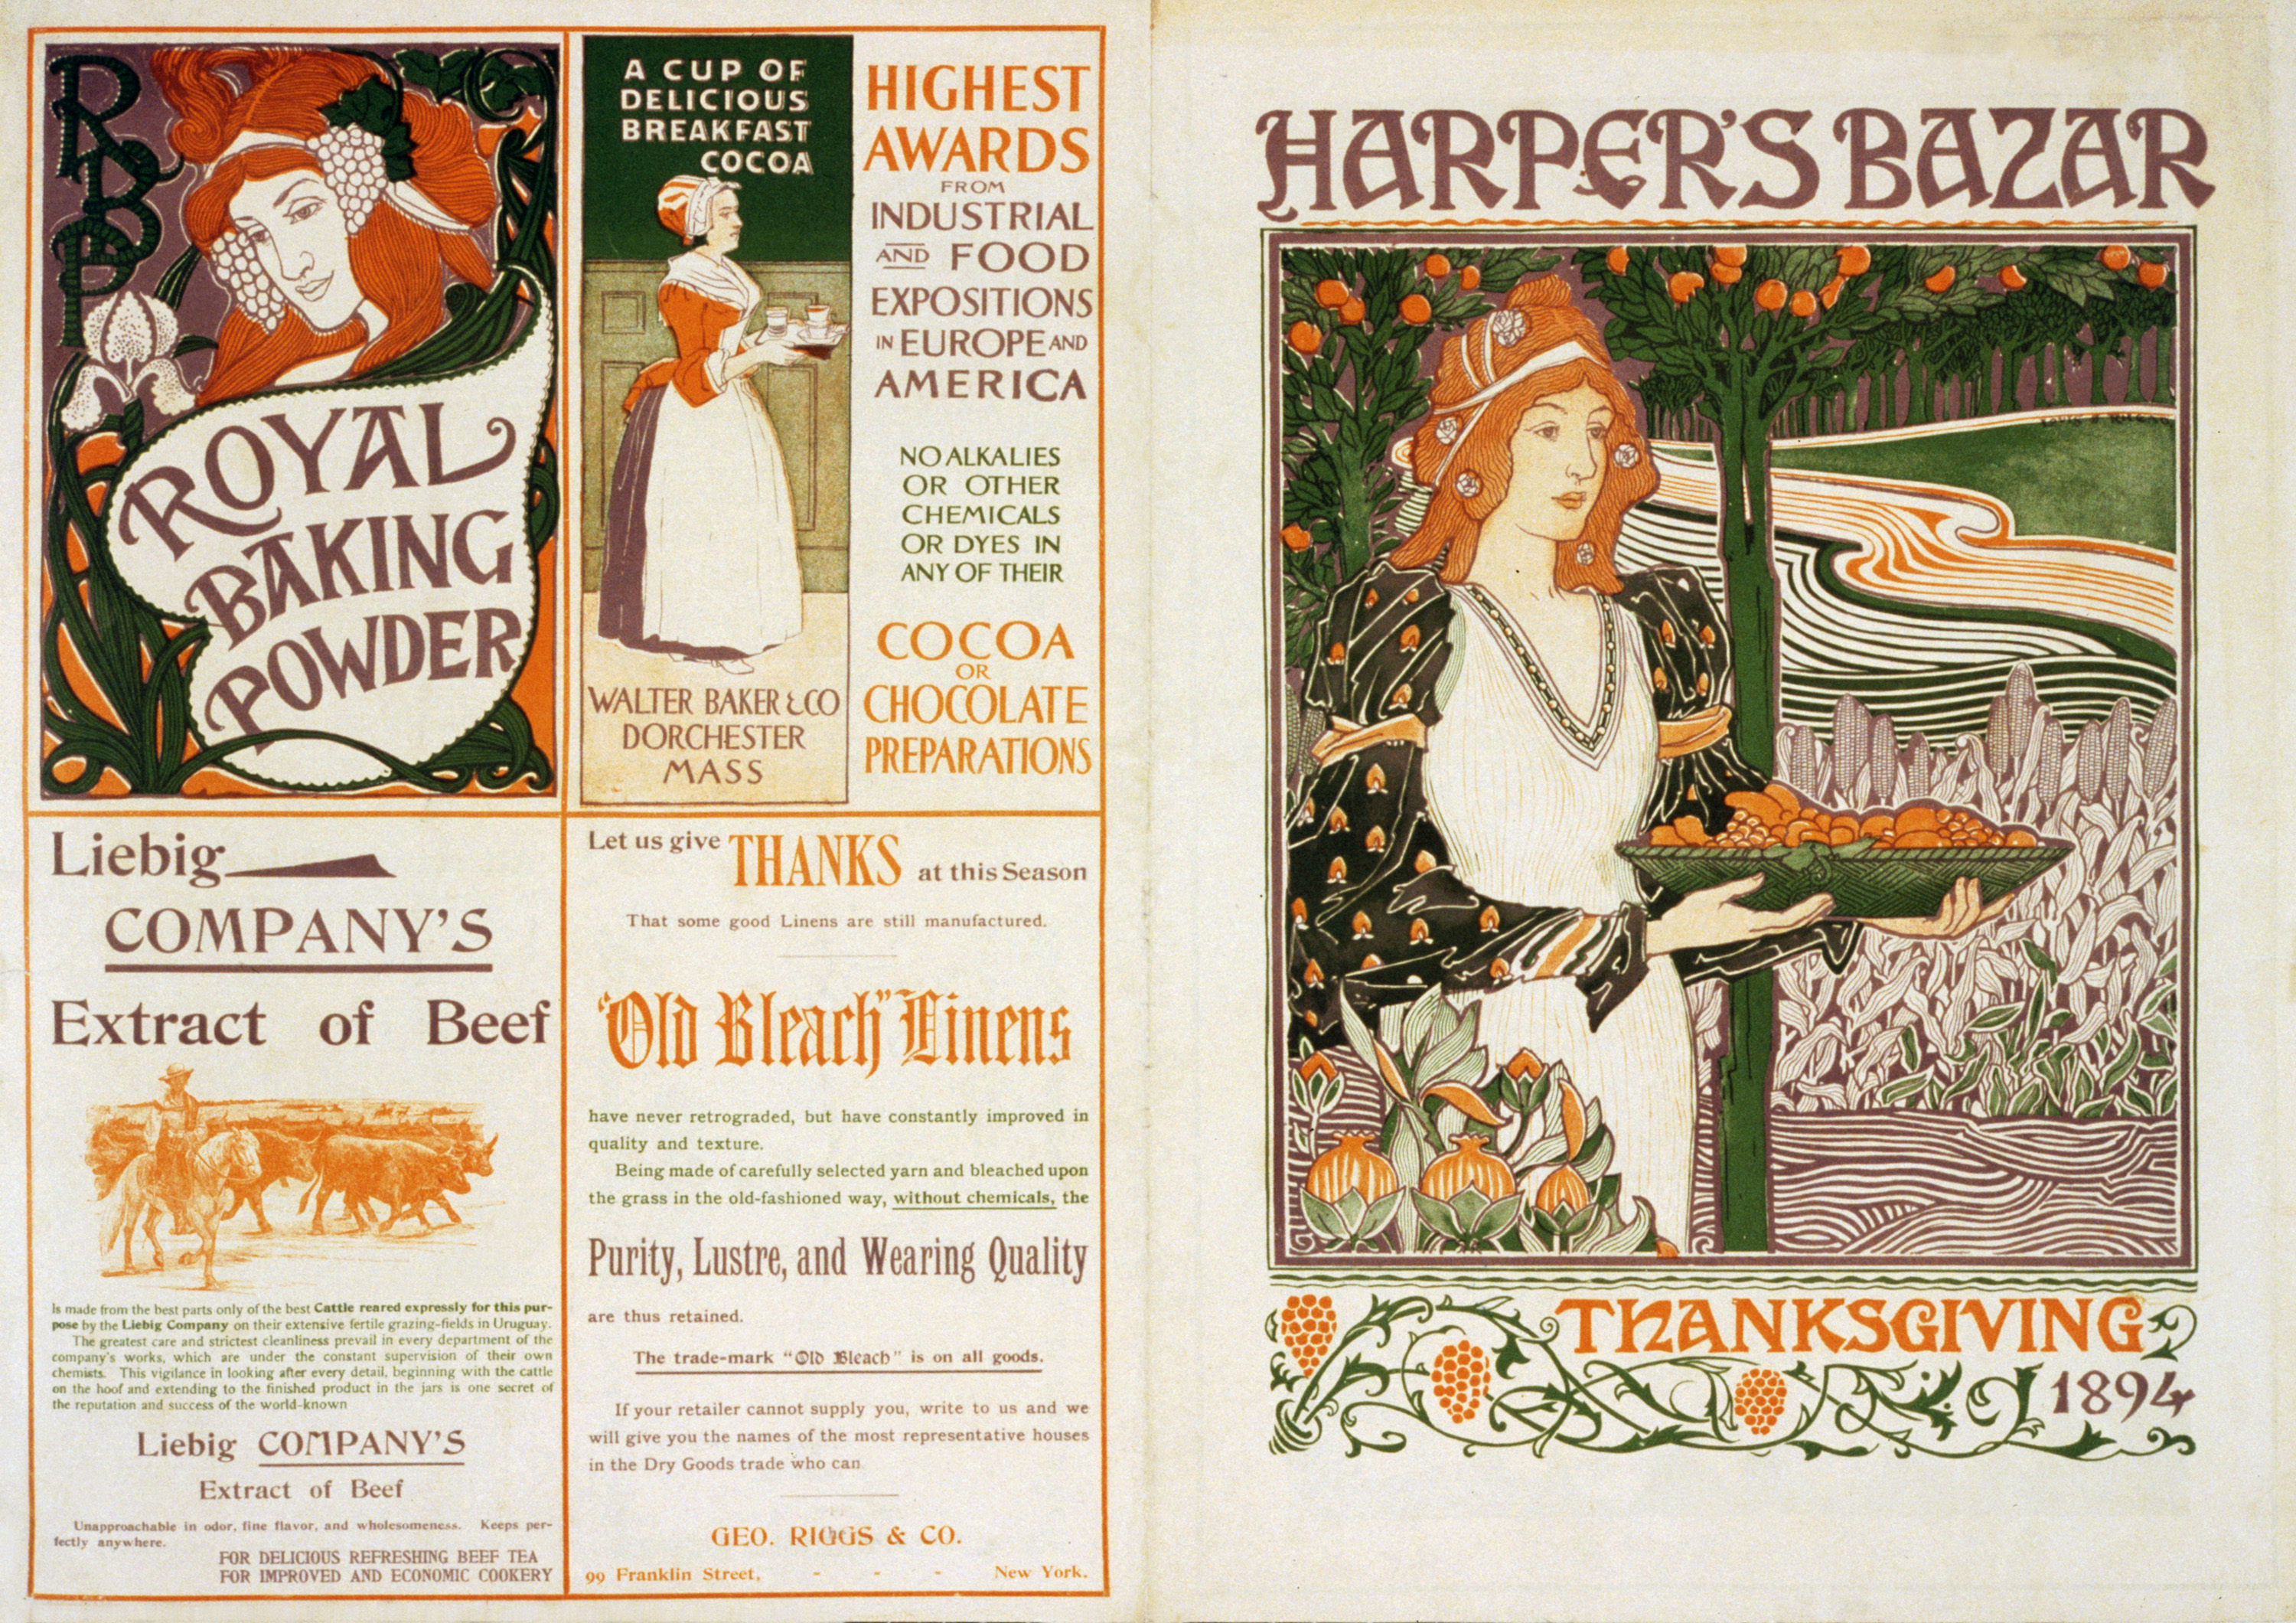 Harper's Magazine Cover Thanksgiving 1894 by Louis Rhead